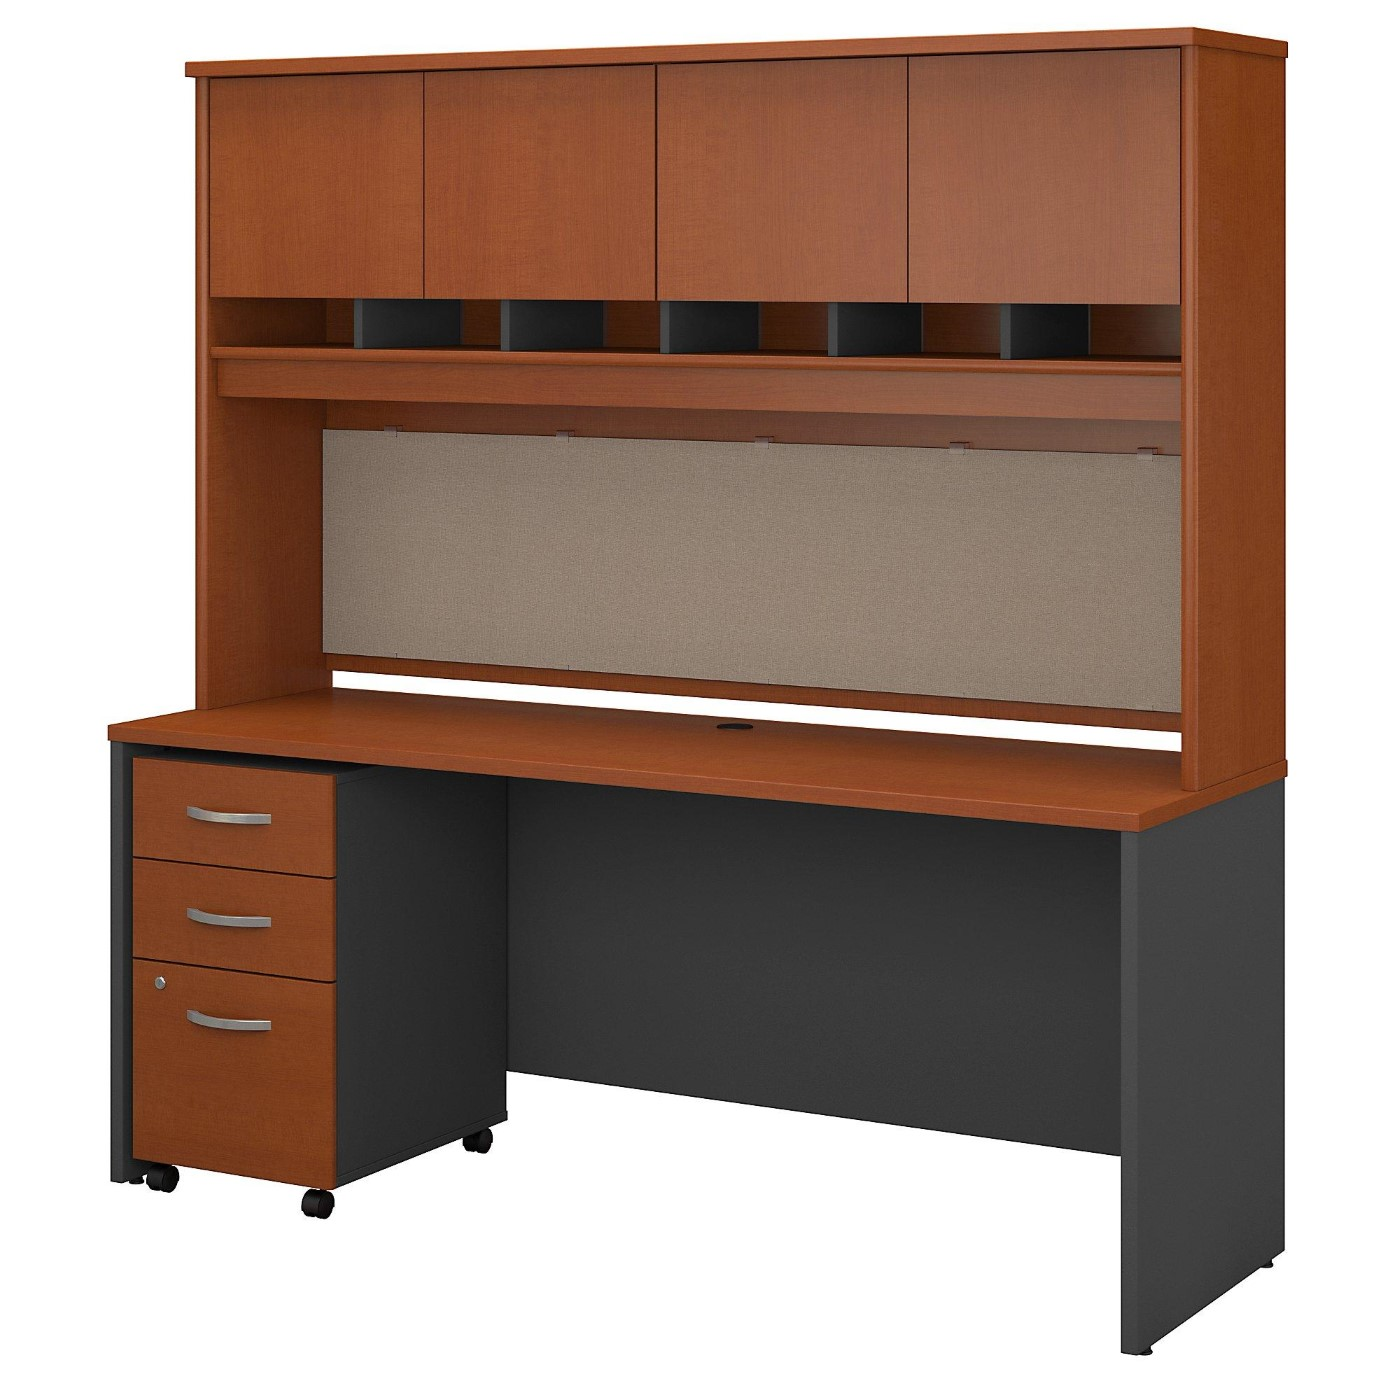 <font color=#c60><b>BUSH BUSINESS FURNITURE SERIES C 72W X 24D OFFICE DESK WITH HUTCH AND MOBILE FILE CABINET. FREE SHIPPING</font></b></font></b>